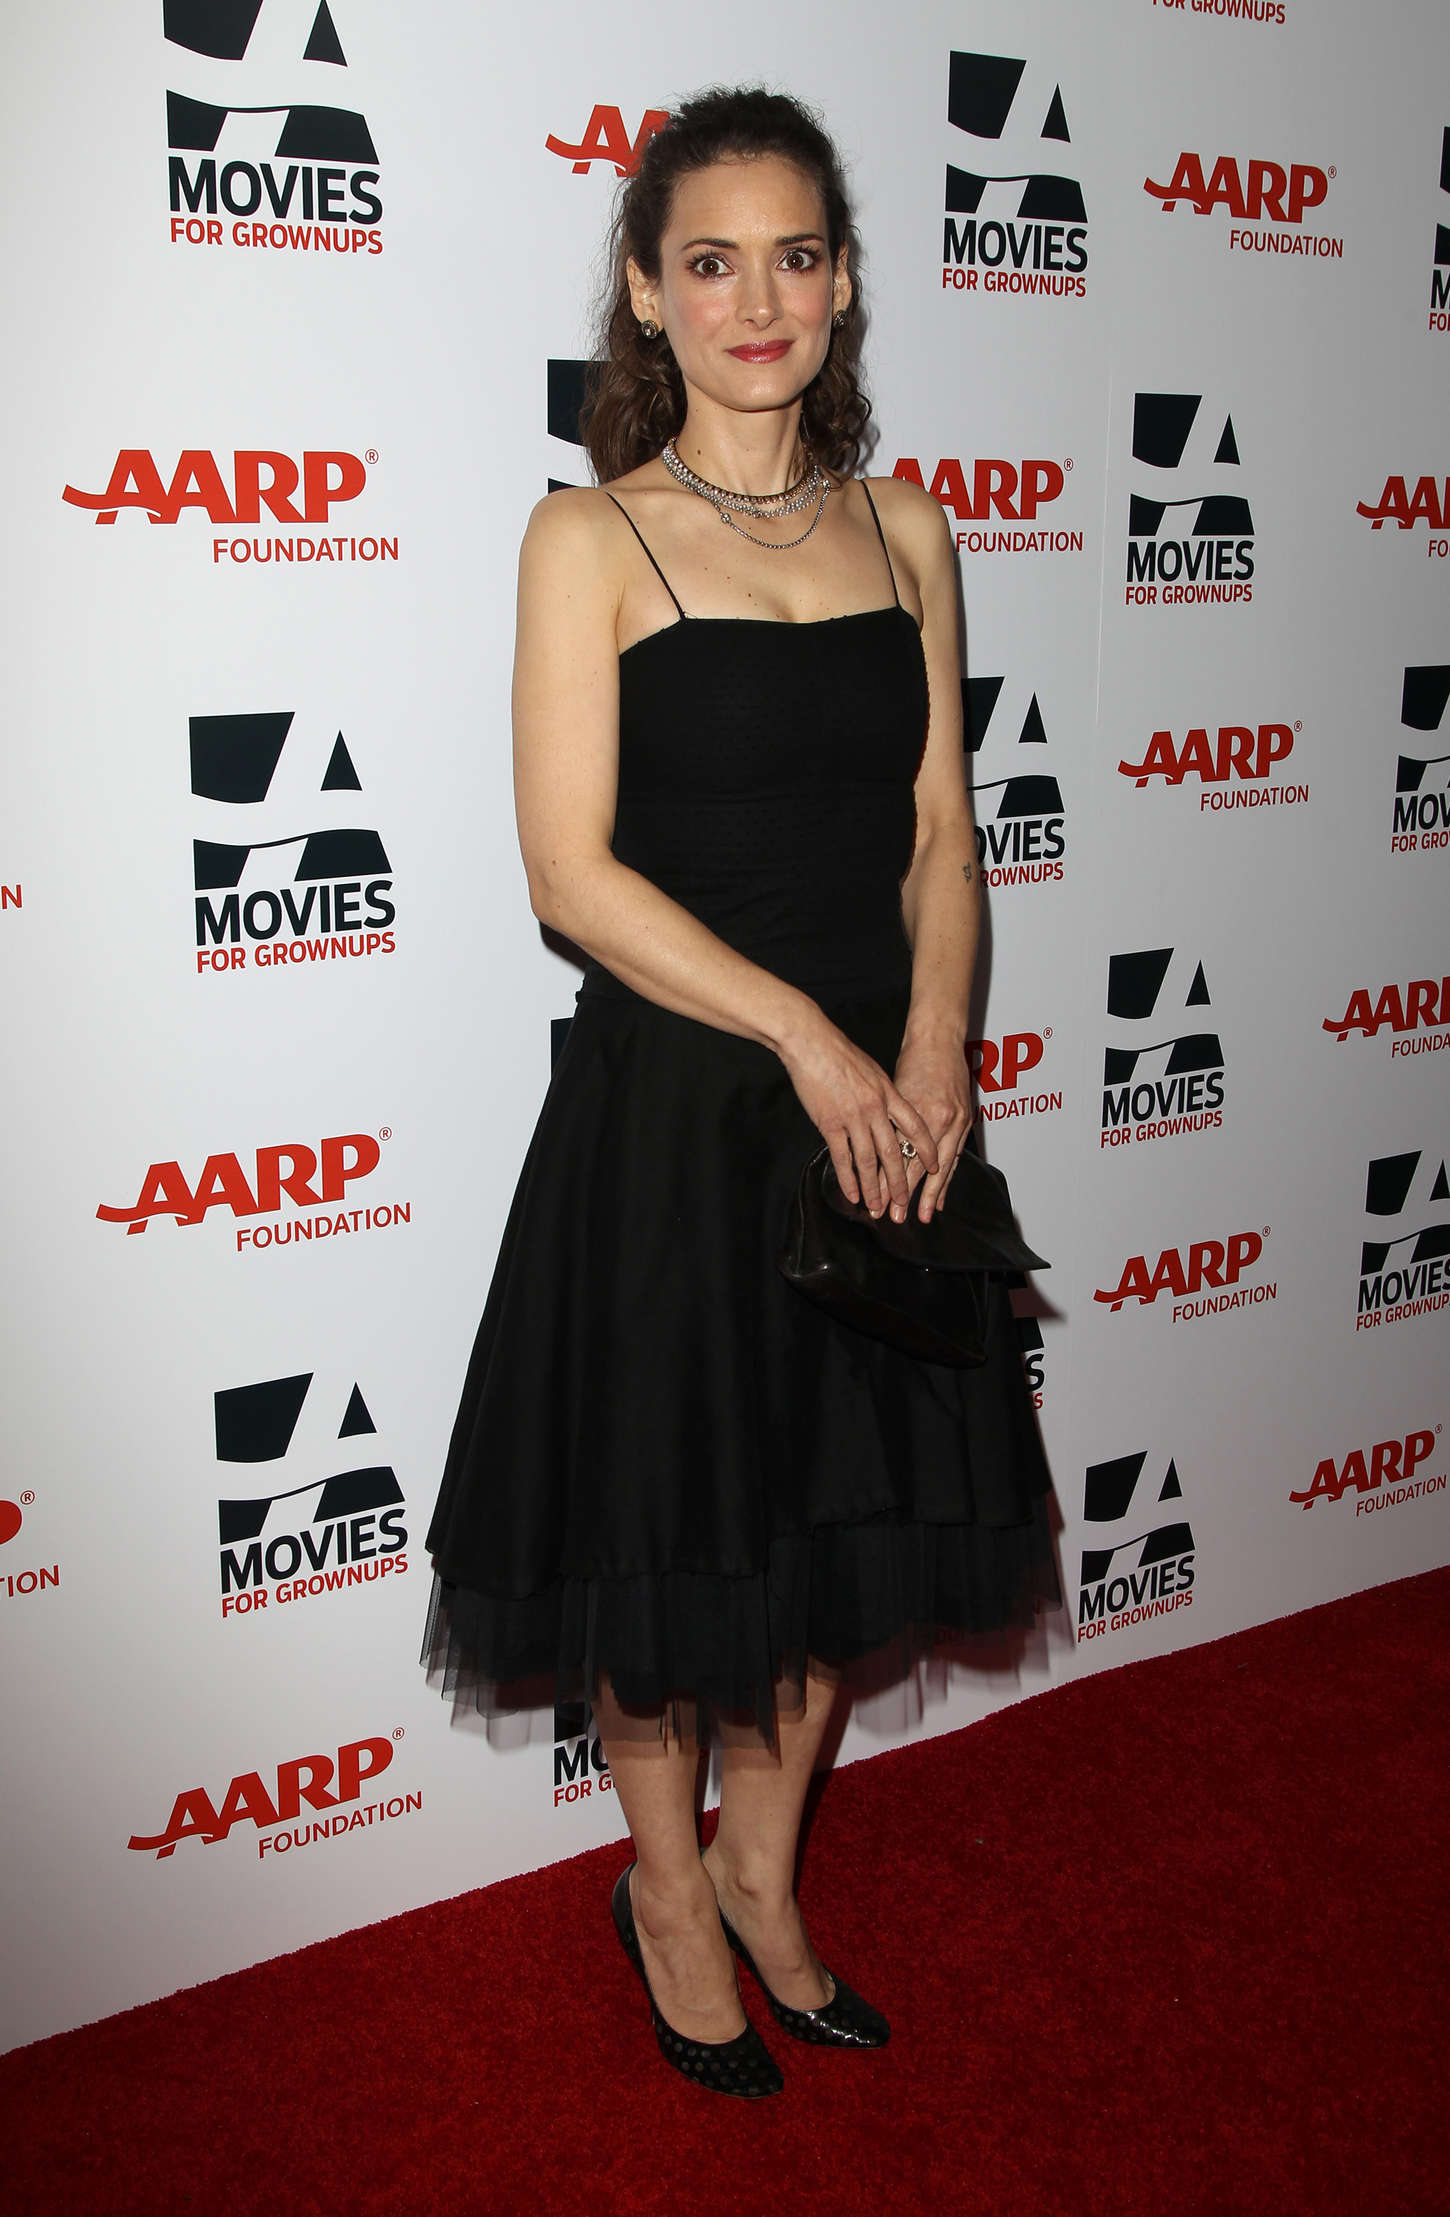 Winona Ryder Annual AARPs Movies for Grownups Awards in Beverly Hills